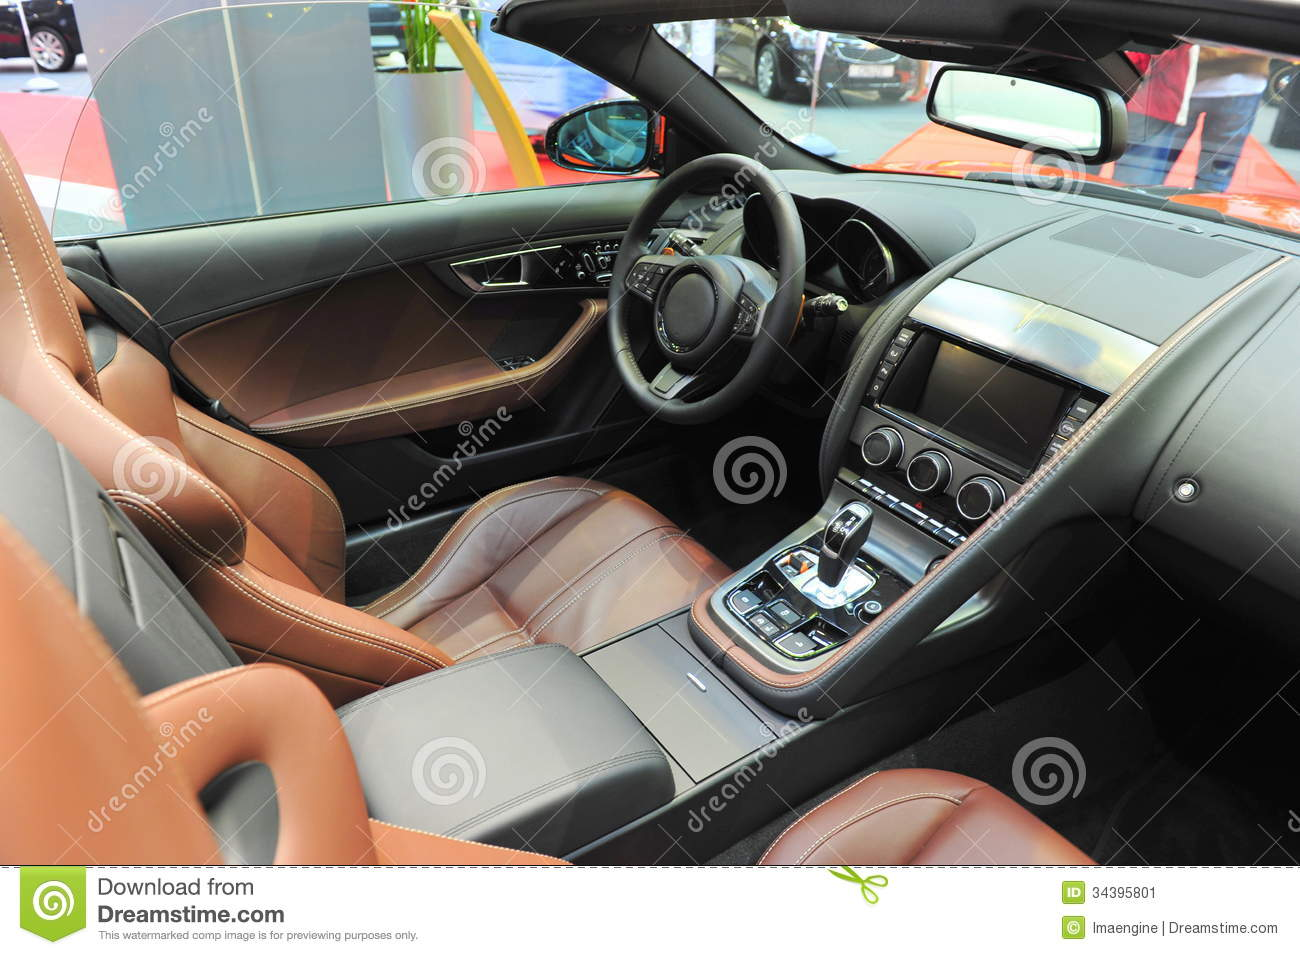 leather interior of a convertible jaguar sports car stock image image of dashboard automobile. Black Bedroom Furniture Sets. Home Design Ideas